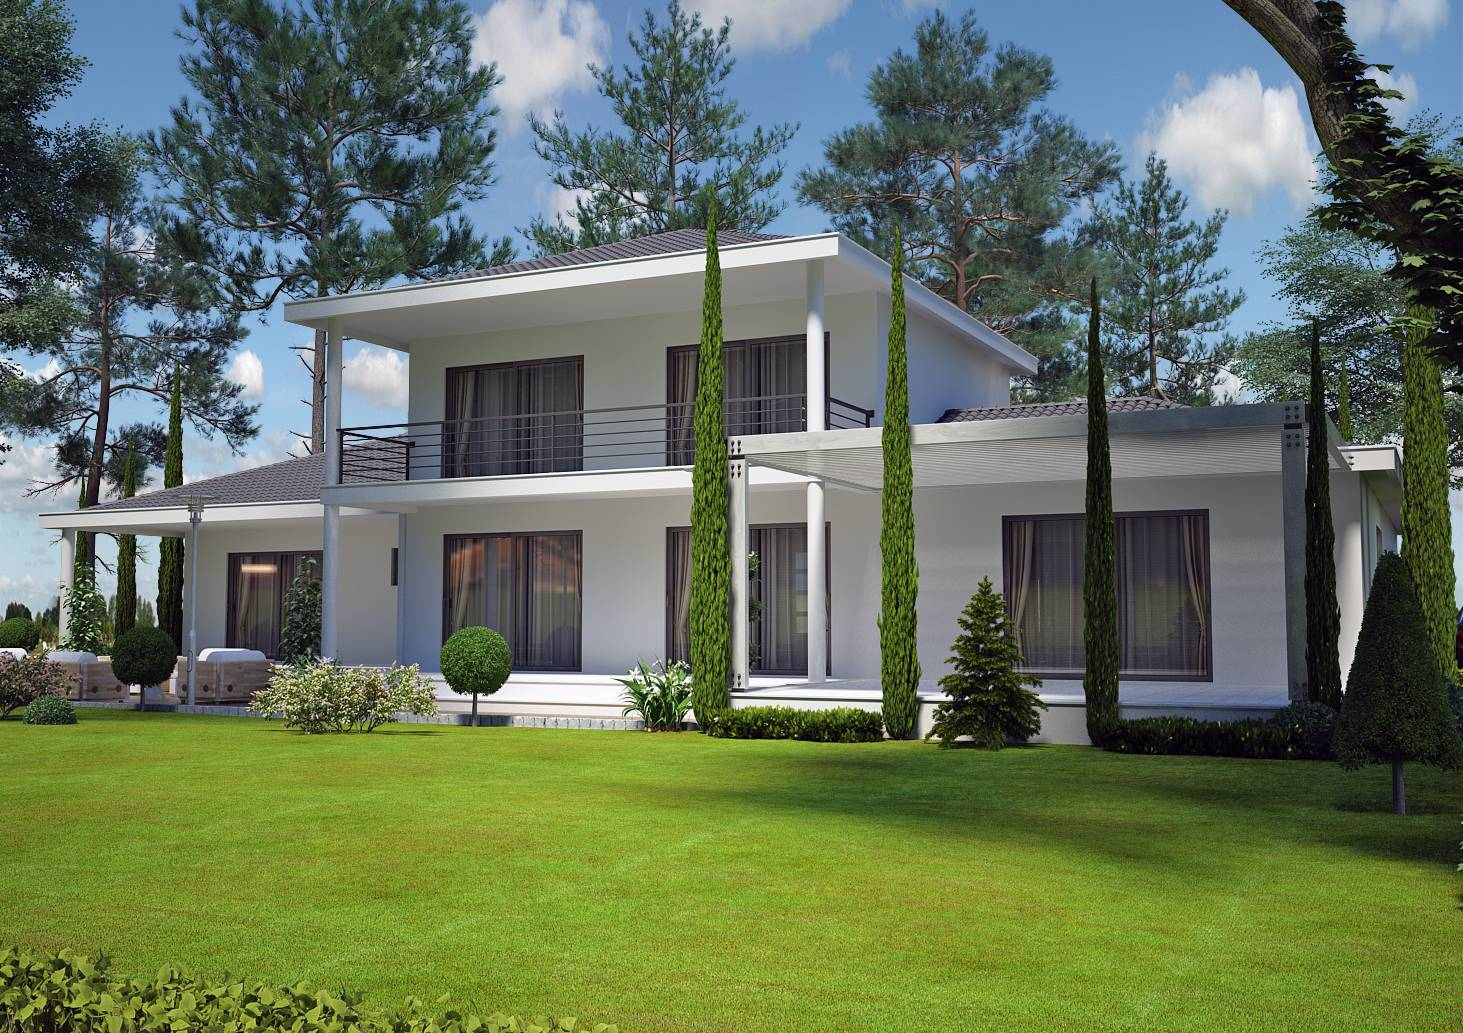 Villa contemporaine 150 m2 etage mod le pinede salon for Maison d en france salon de provence